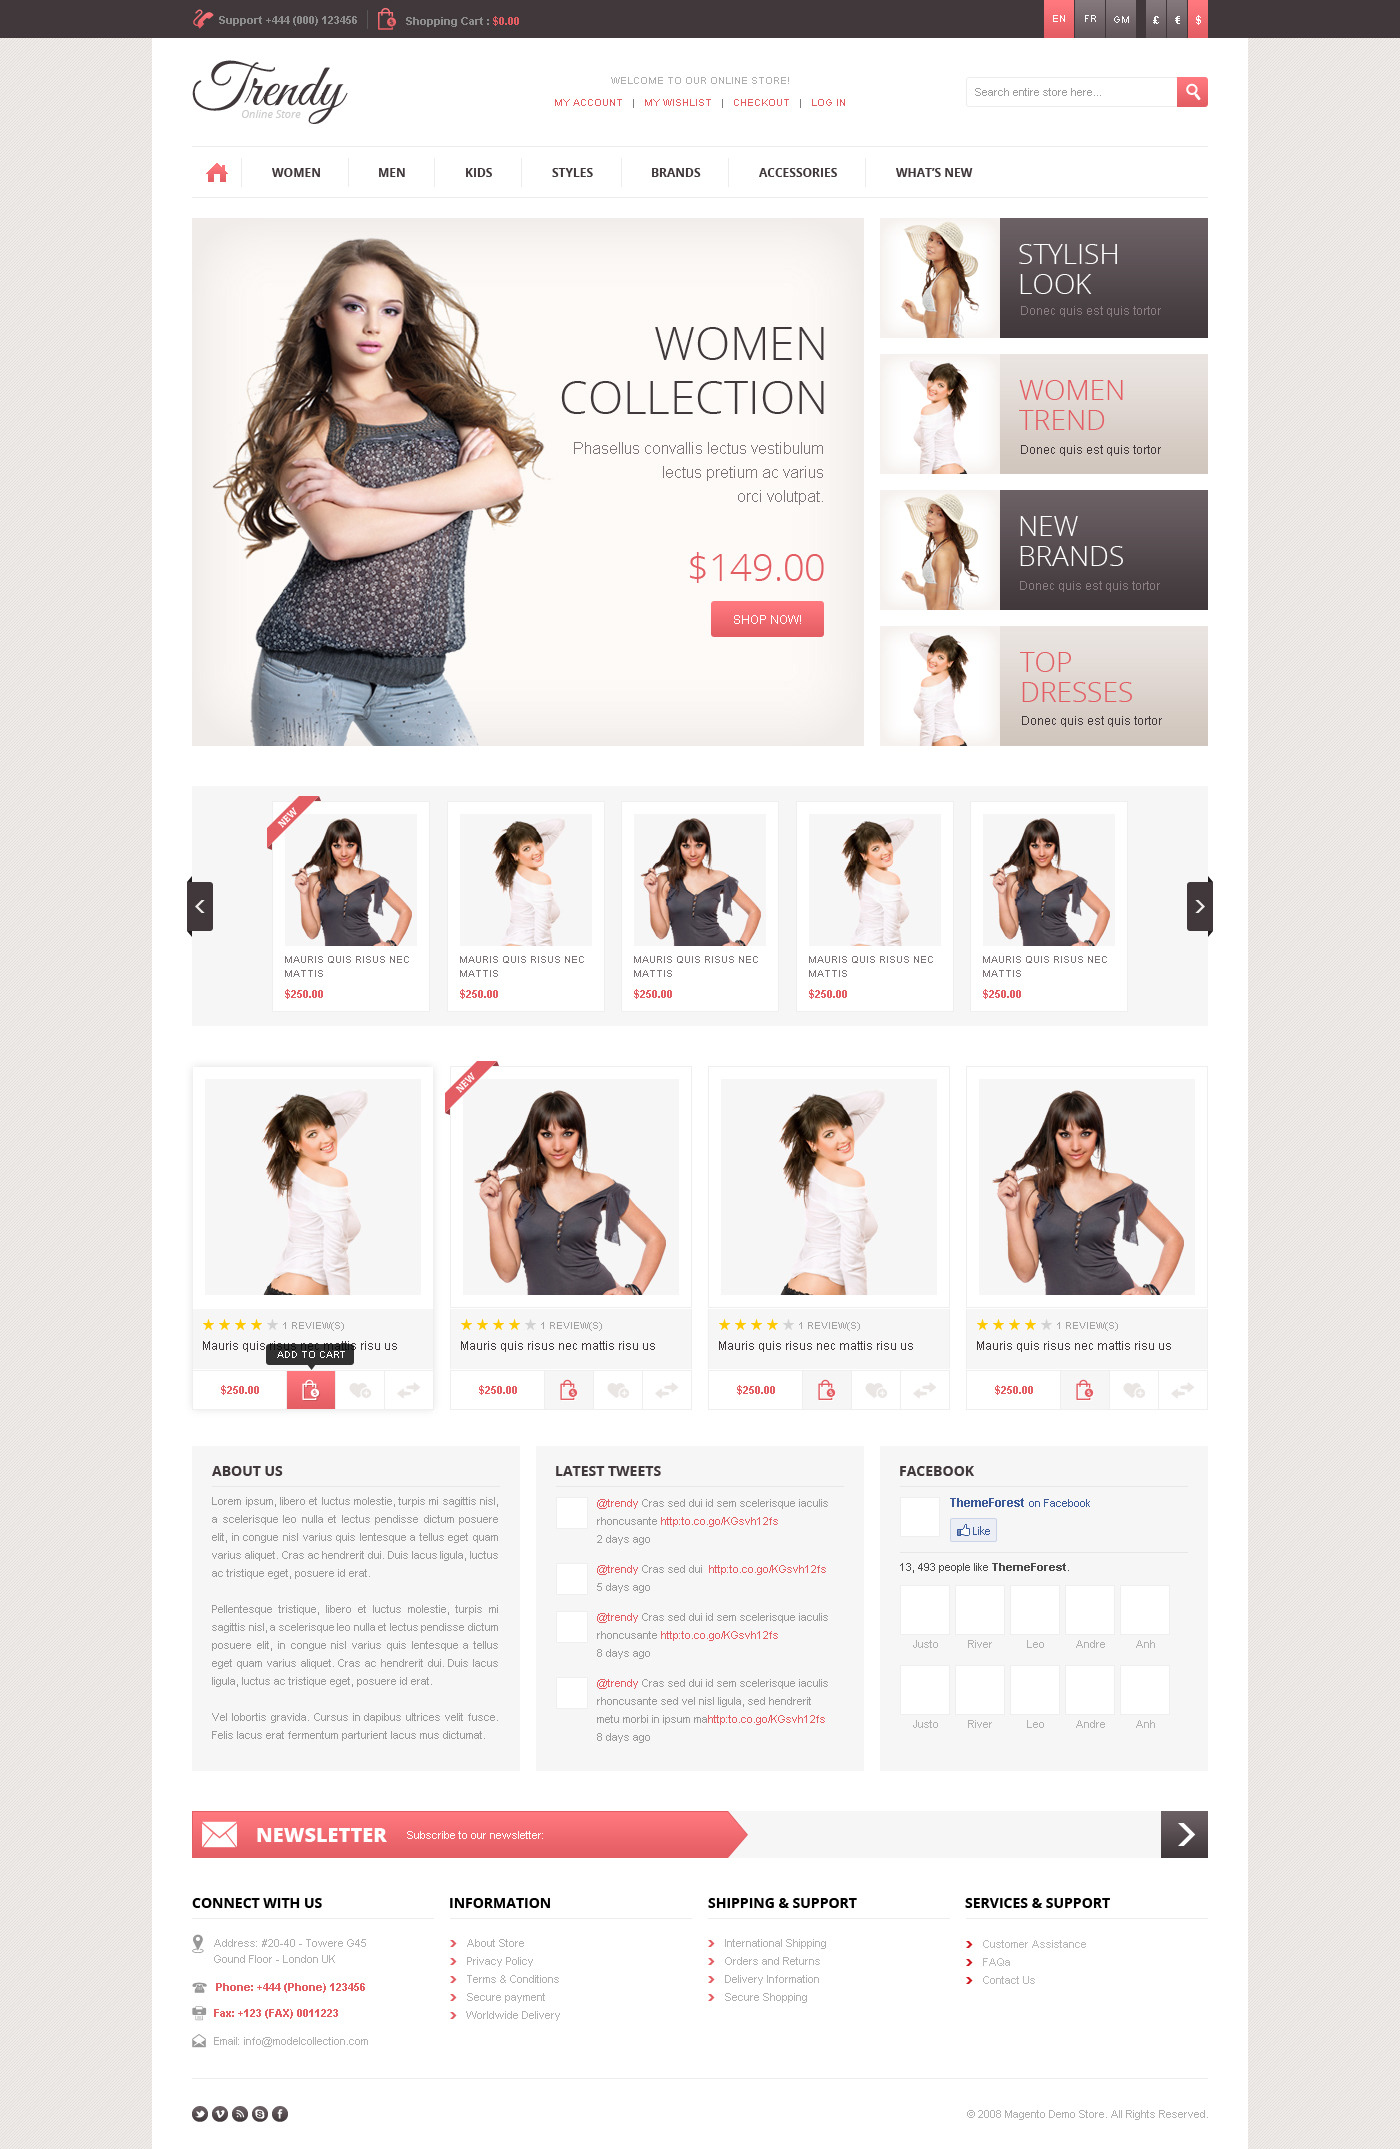 6 free responsive magento themes for your next ecommerce store.